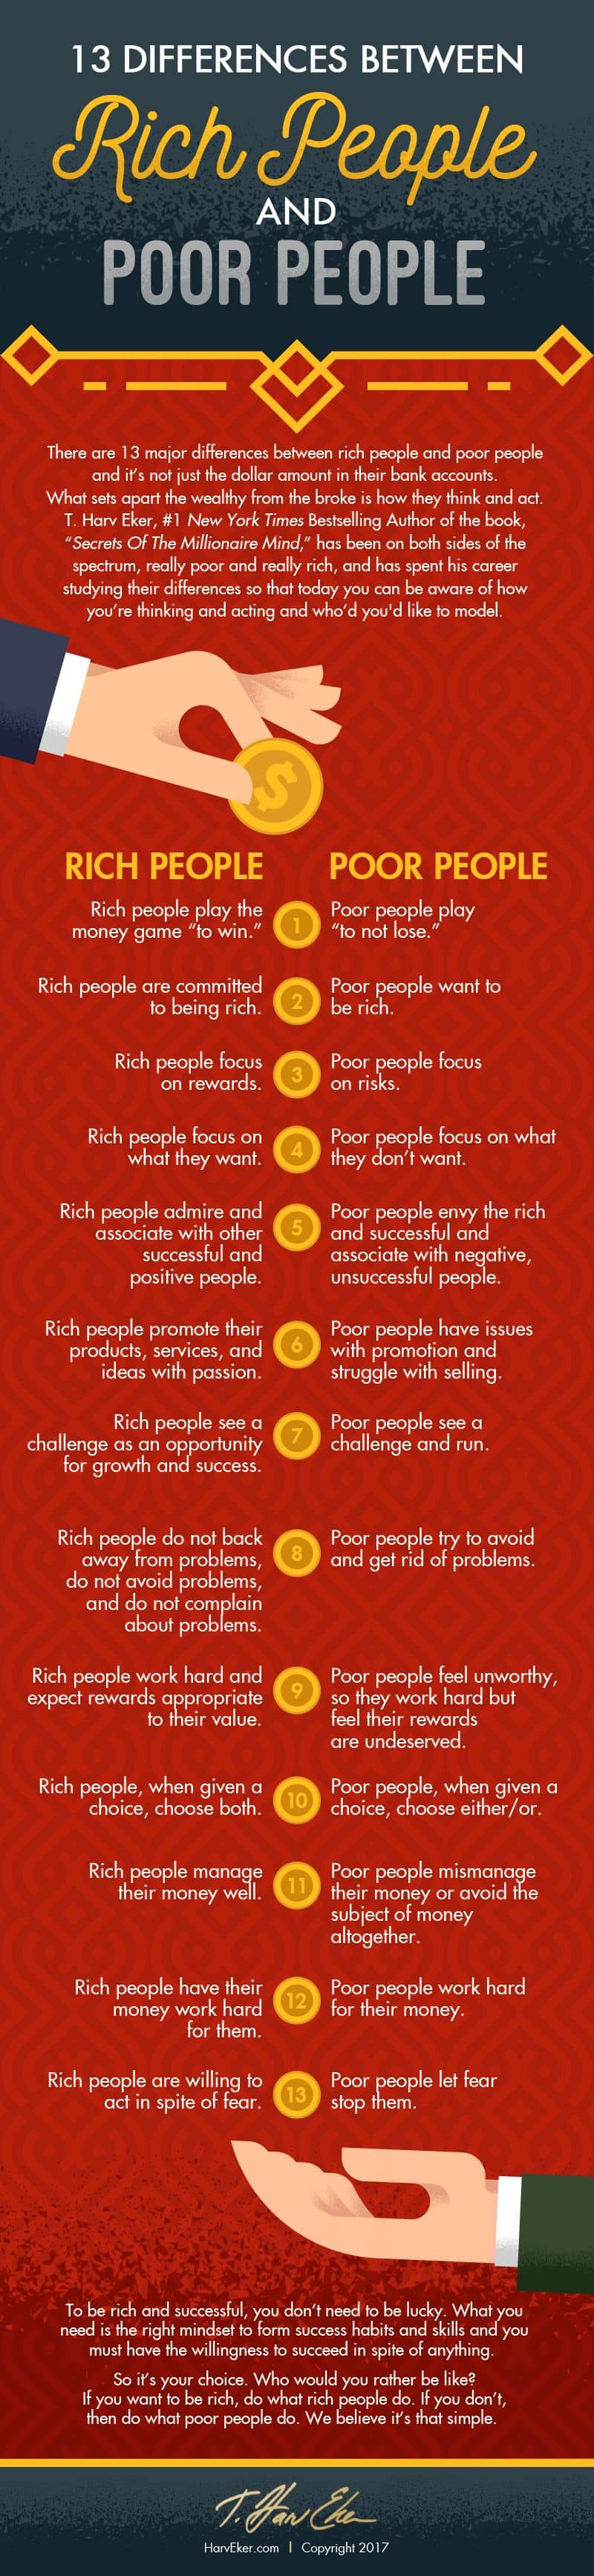 13 Differences Between Rich People And Poor People #infographic